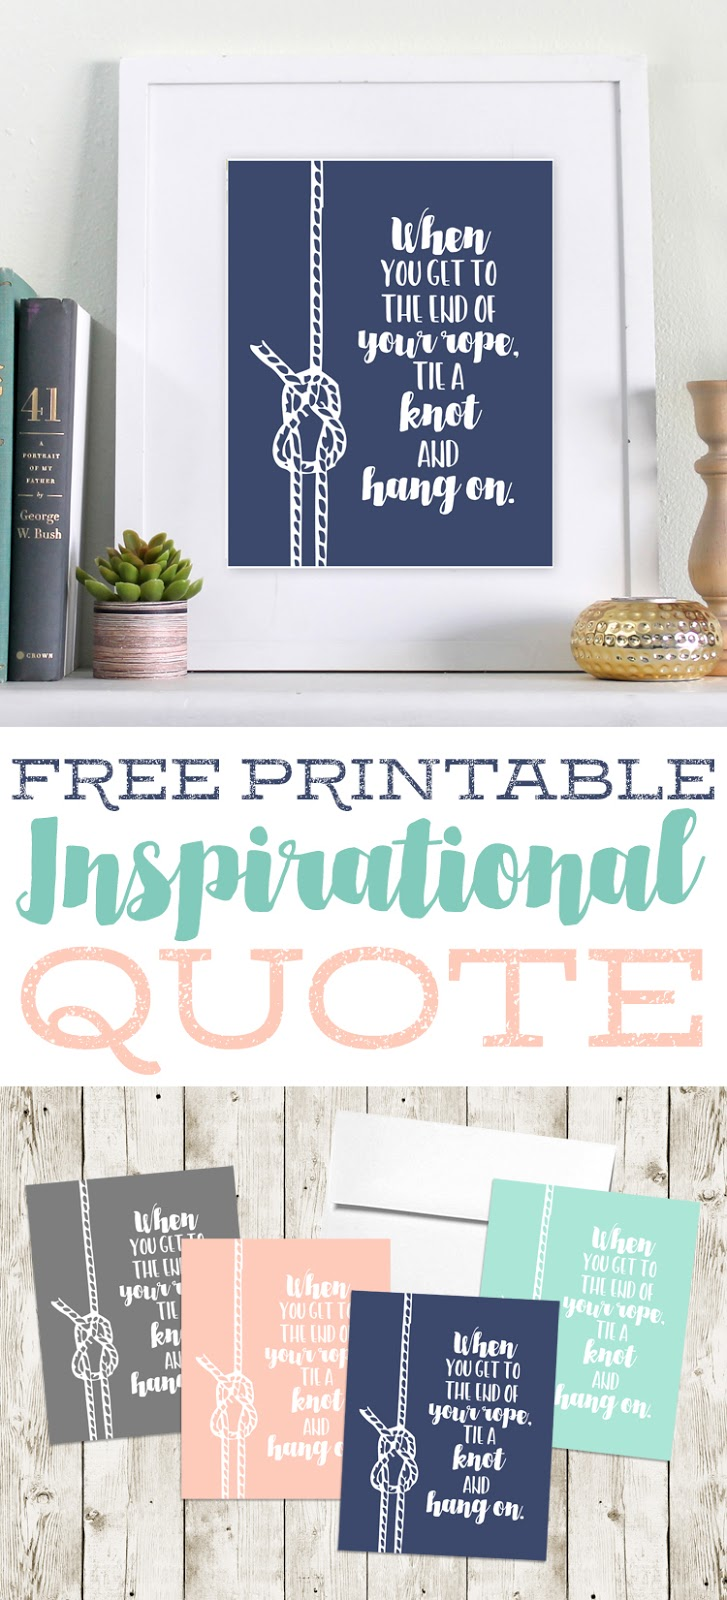 Free printable inspirational quote to use as wall art or to send to a friend who's going through a hard time.